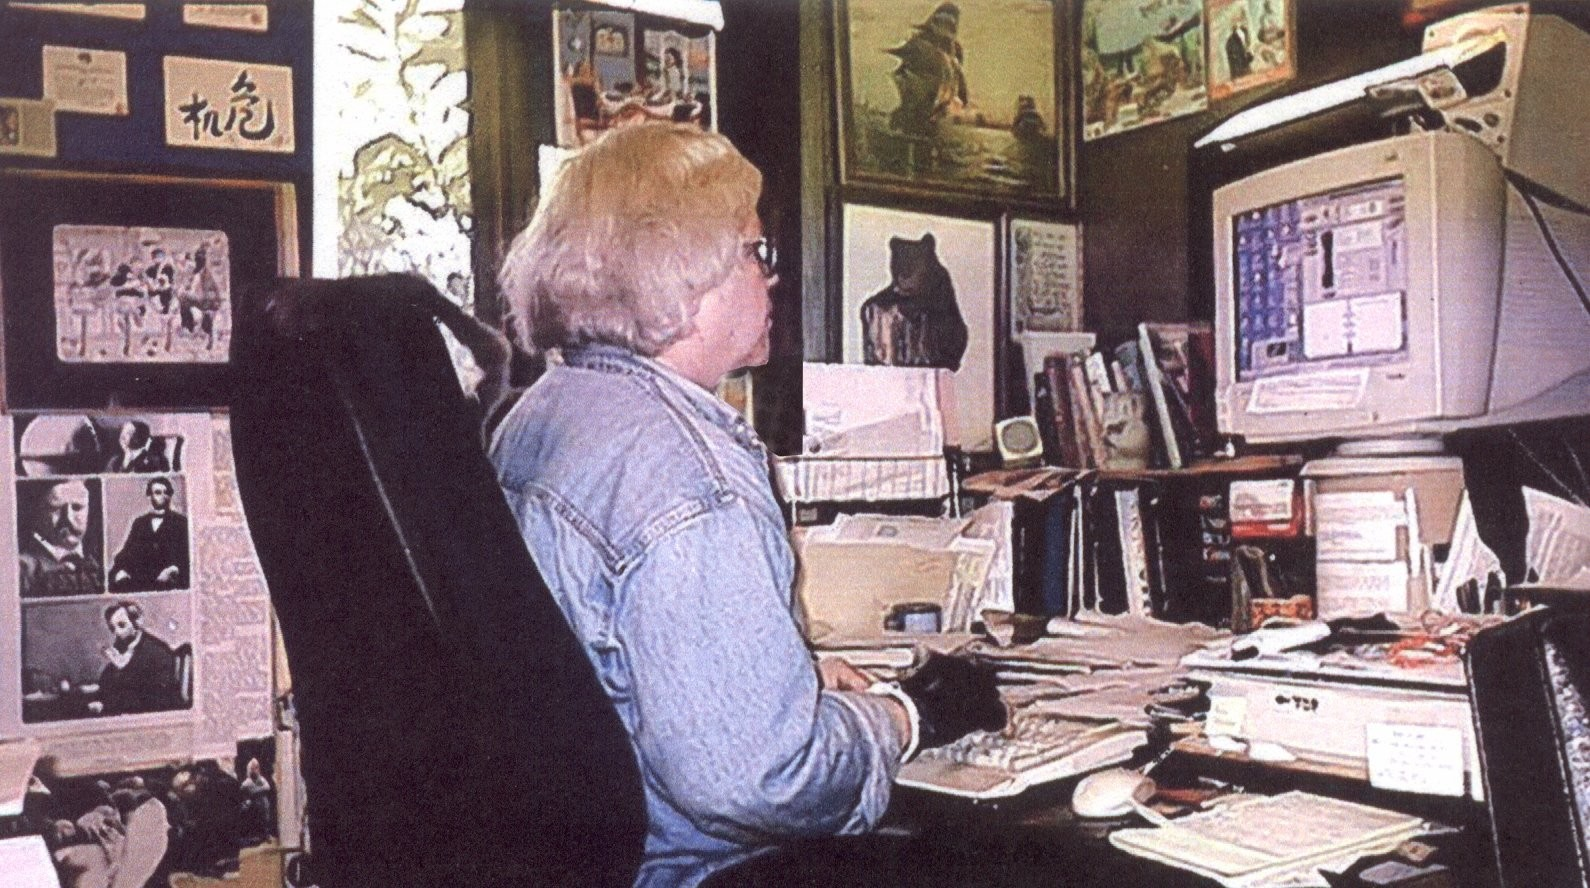 Marty Jones interview image 0